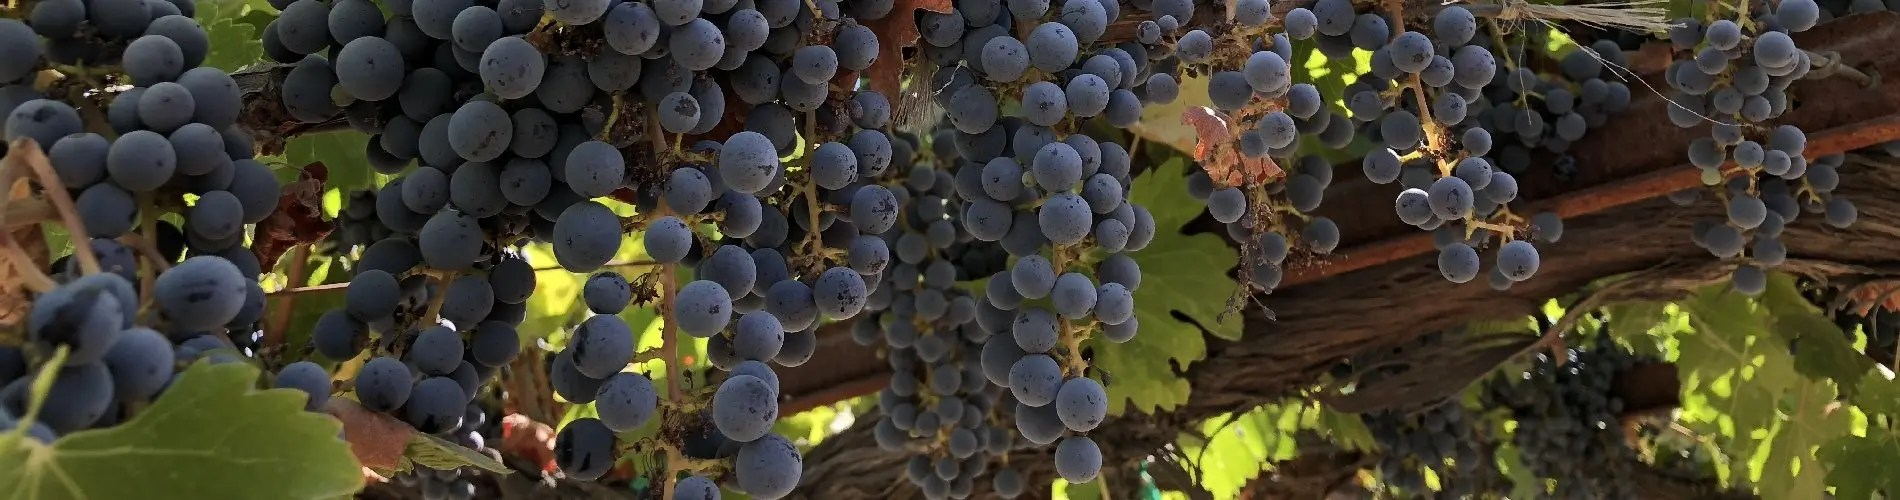 Cabernet Sauvignon vines and grapes